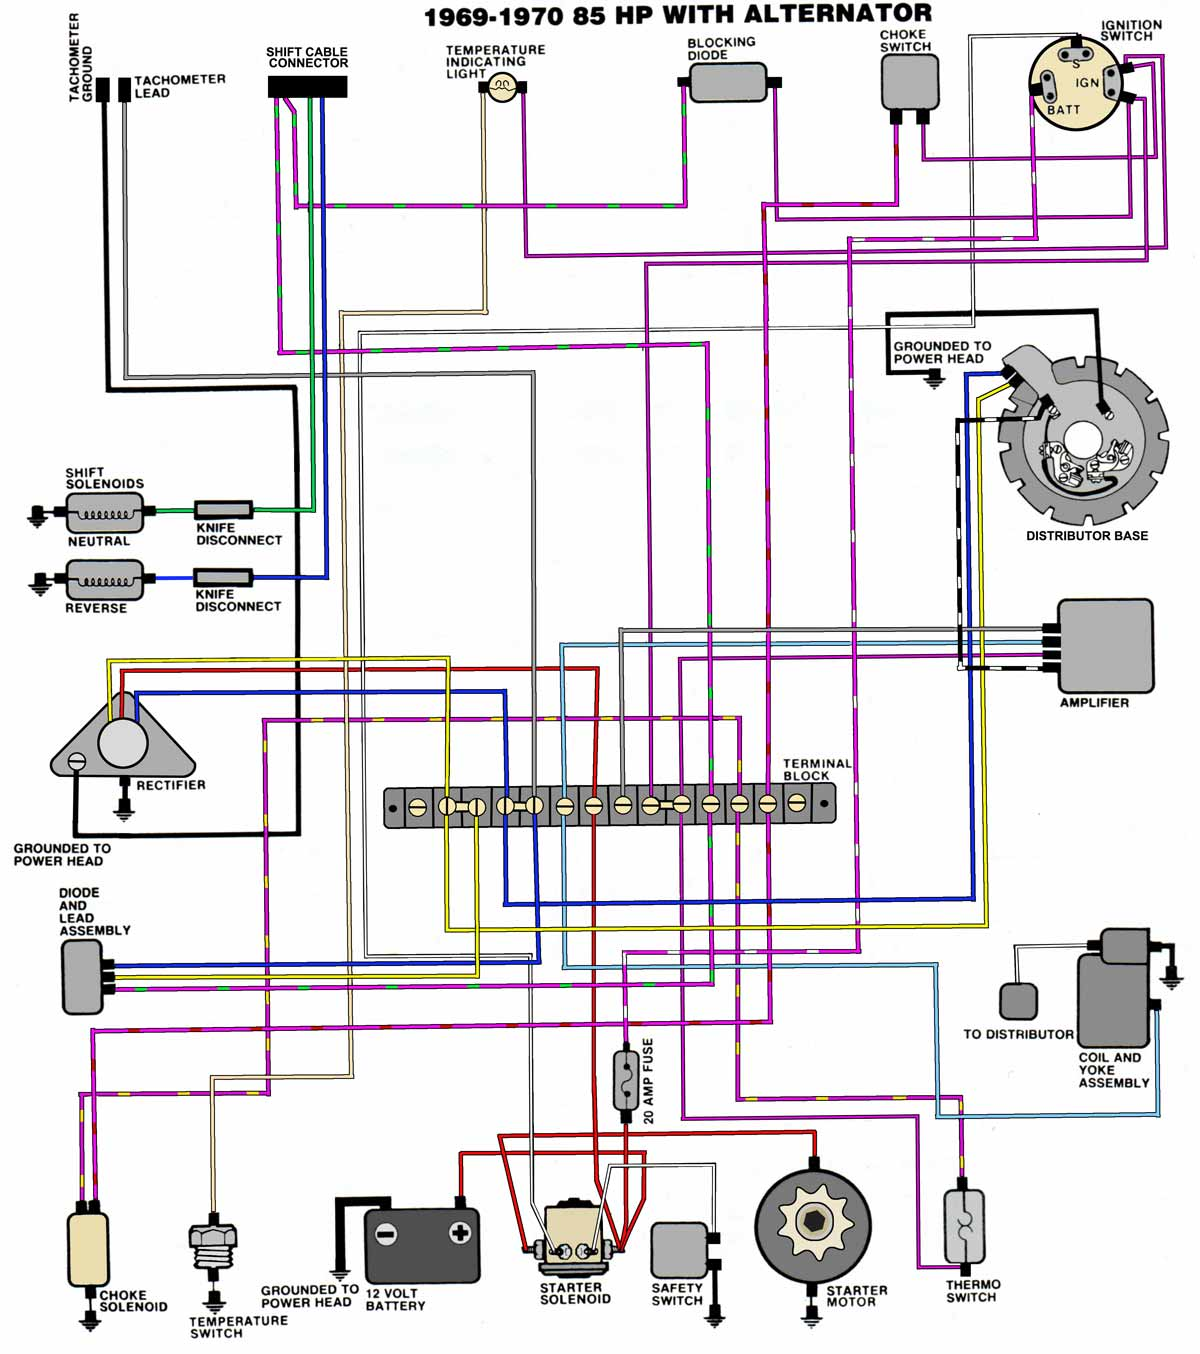 69_70_V4 1969 85hp ignition wiring help page 1 iboats boating forums Mercury Outboard Wiring Schematic Diagram at gsmportal.co